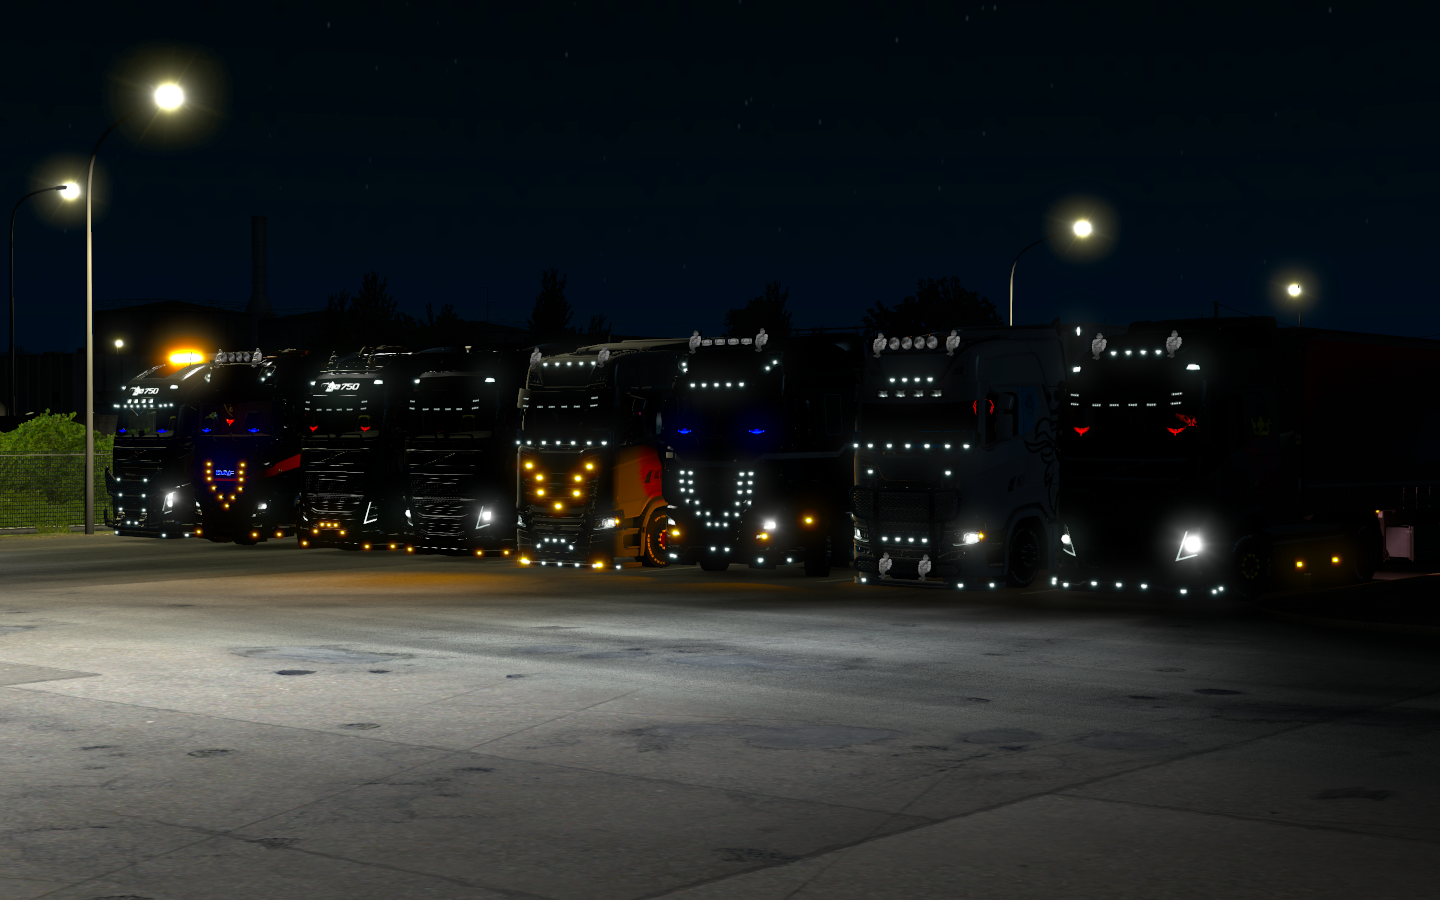 ets2_20190317_143700_00.png